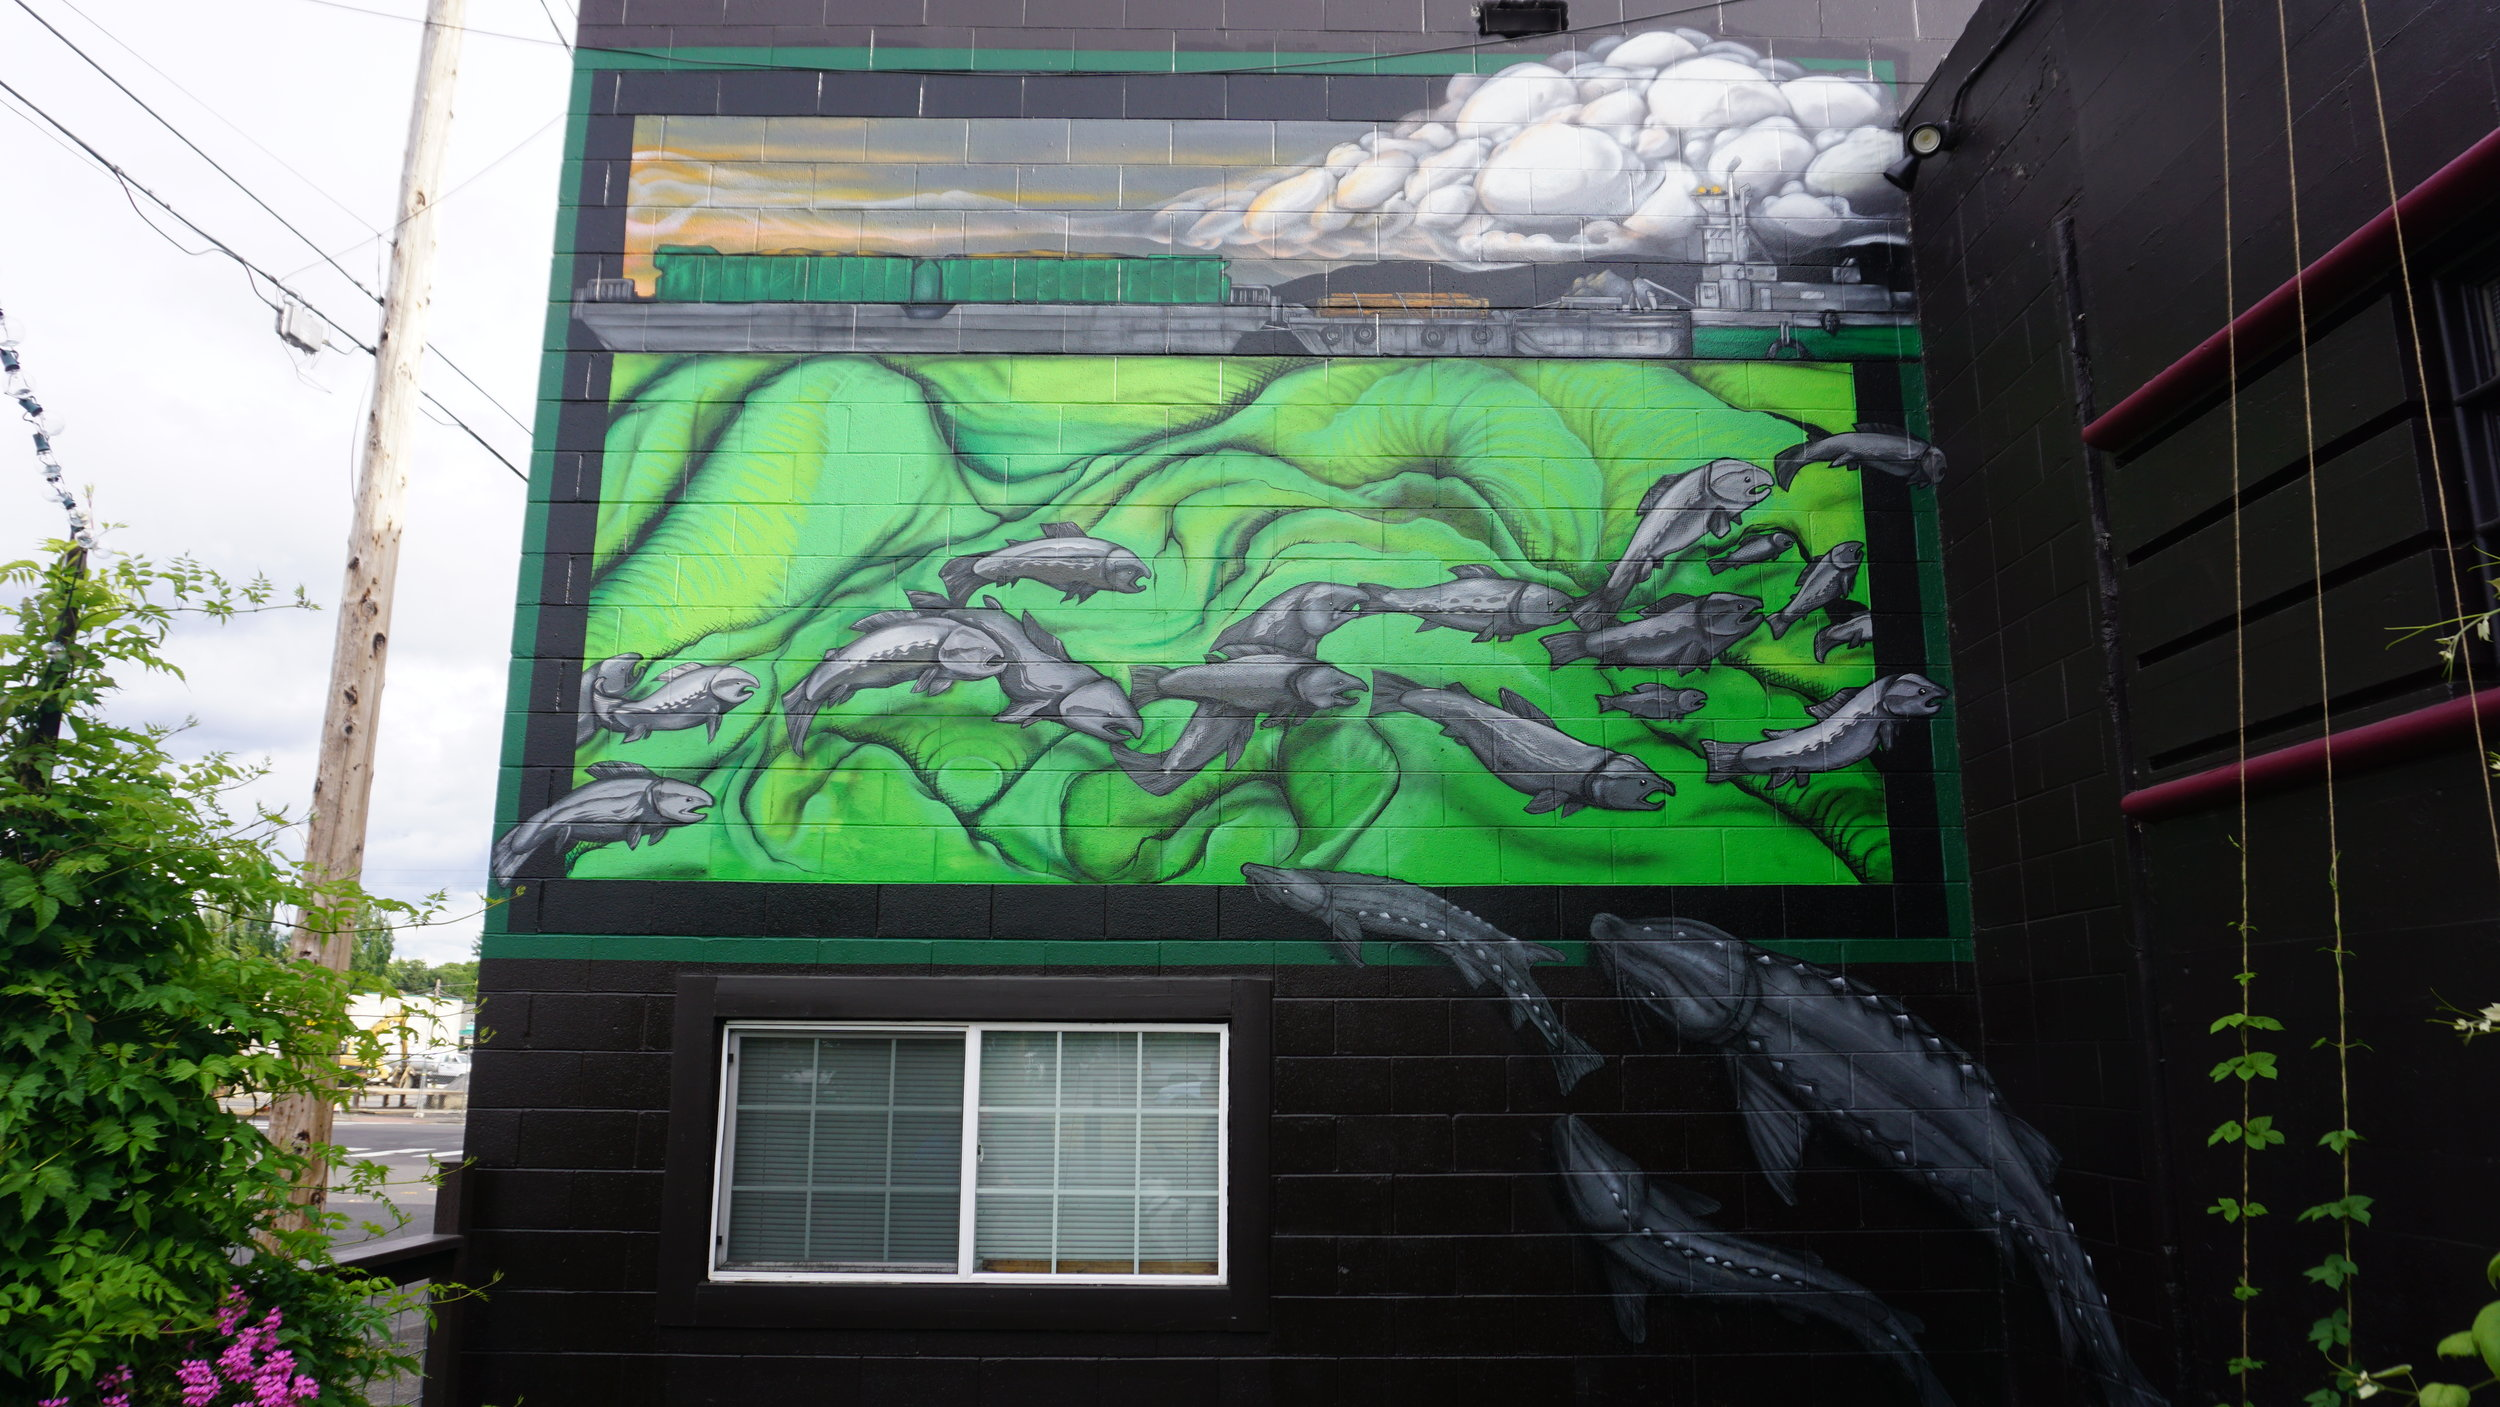 the front of Cellar 55 proudly sports the 2014 first place mural entitled River Traffic created by Bret Frizelle. Viki Eierdam